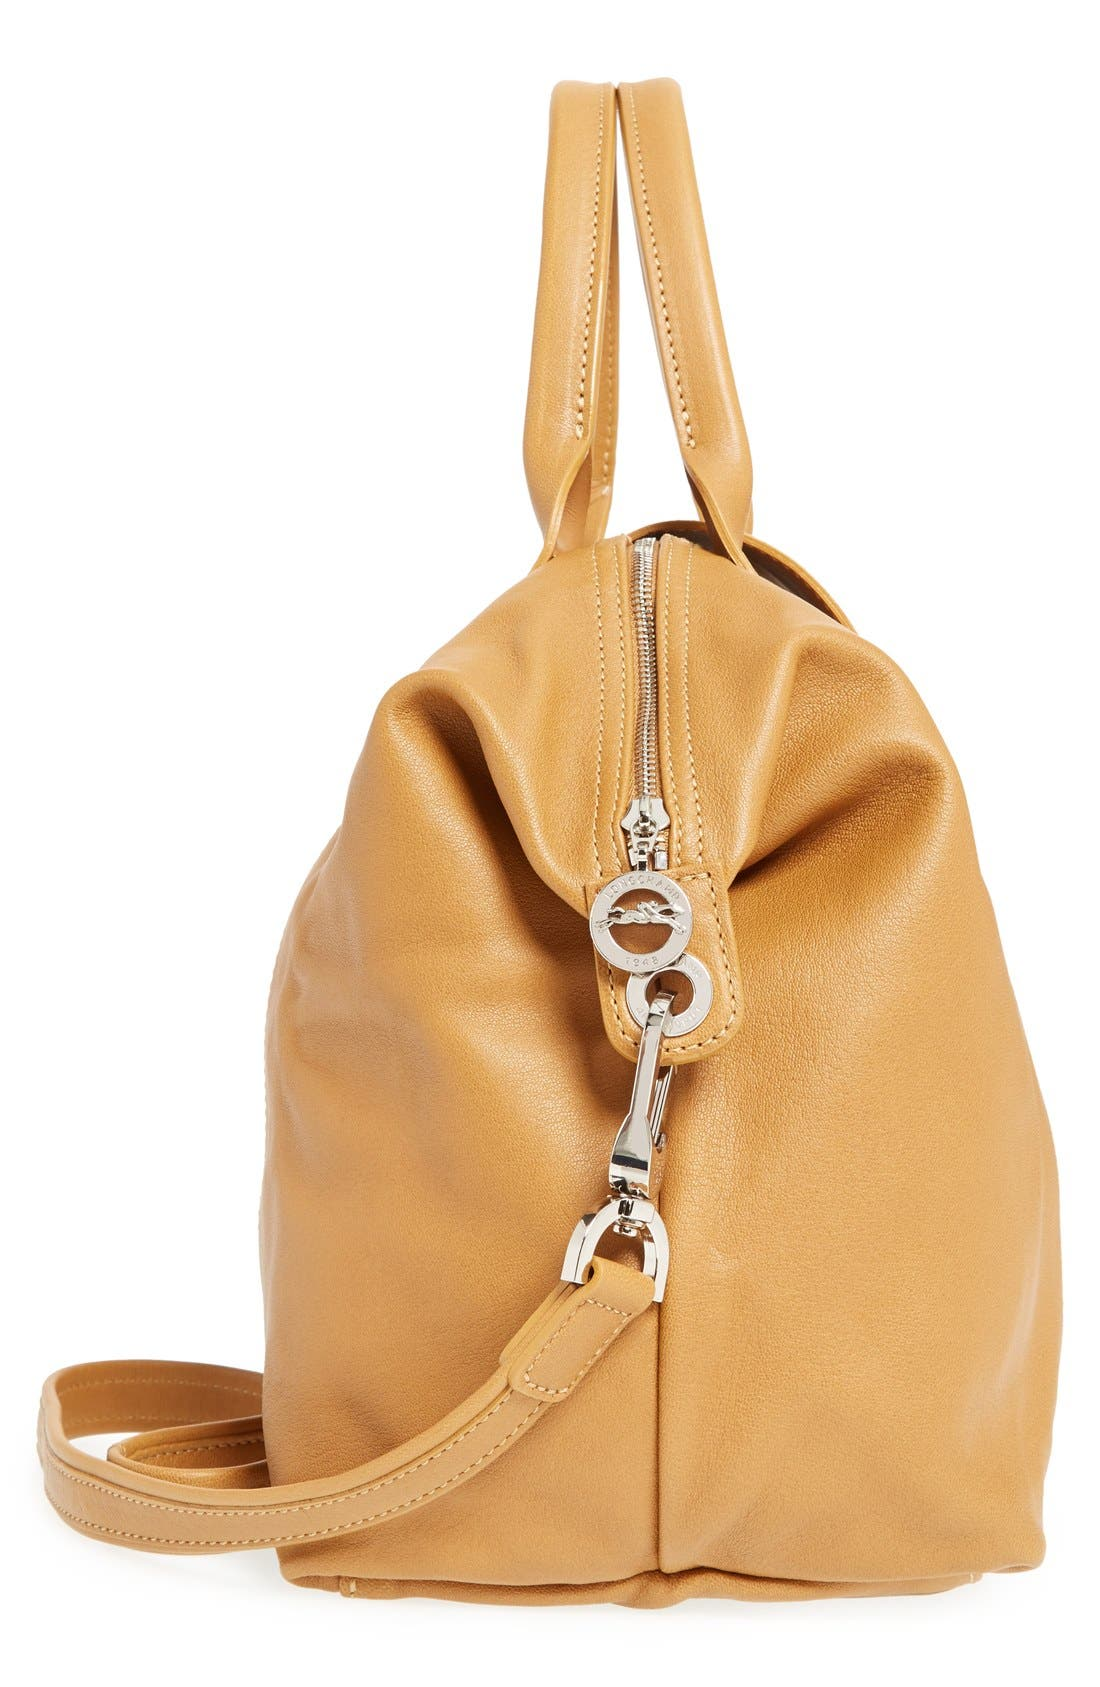 Medium 'Le Pliage Cuir' Leather Top Handle Tote,                             Alternate thumbnail 93, color,